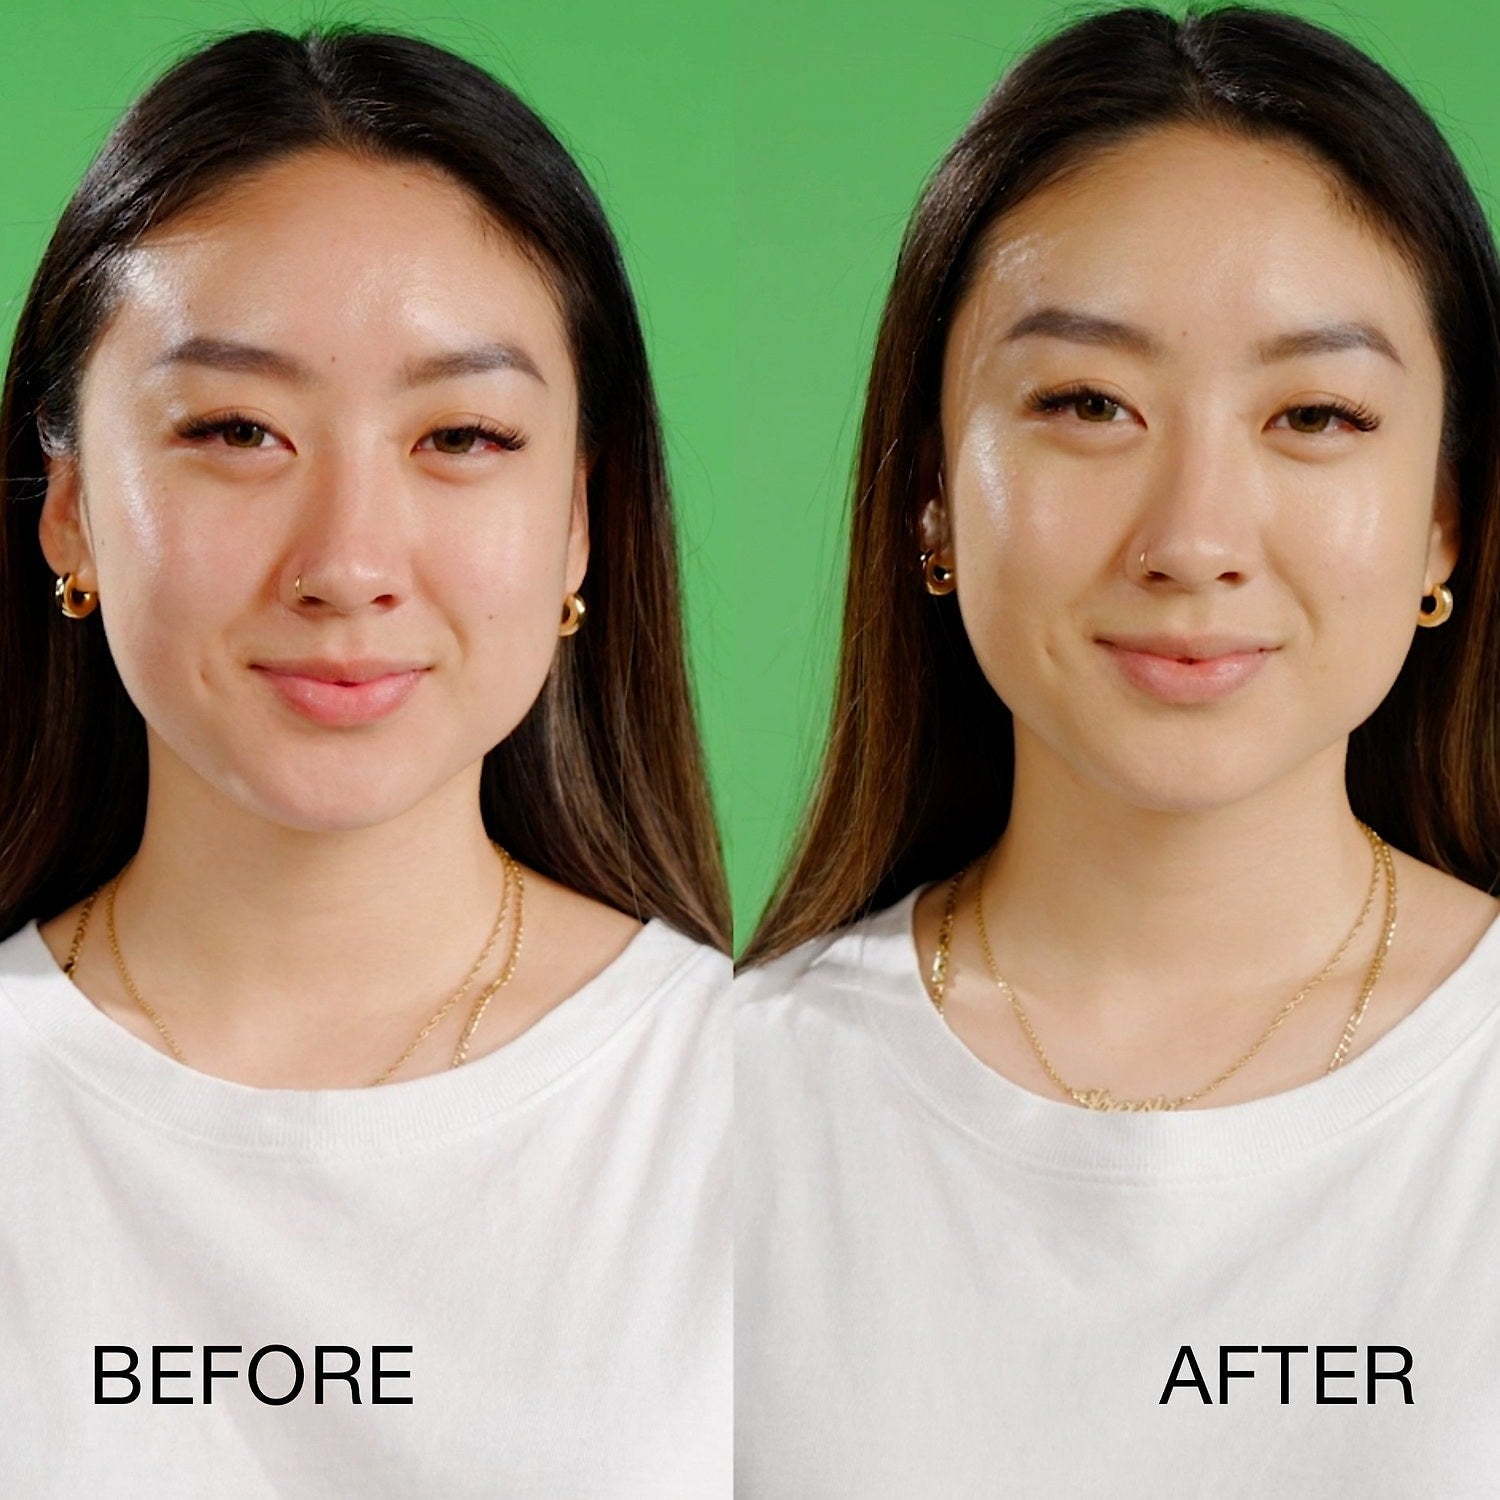 model before and after applying the tra